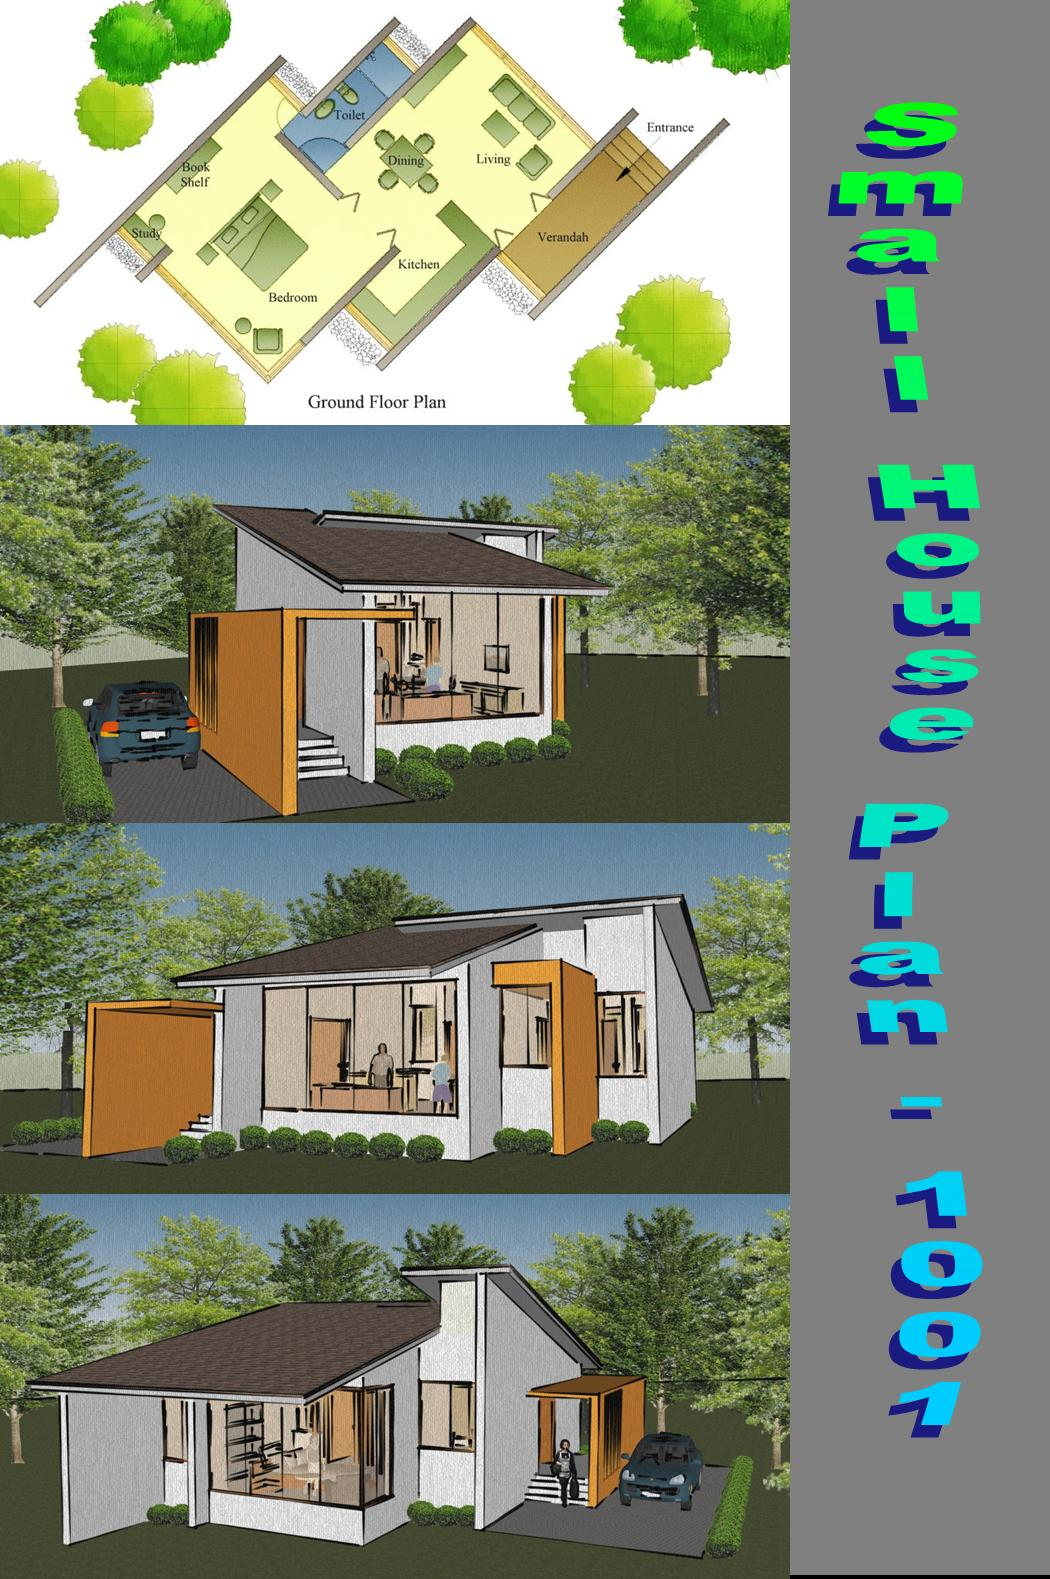 Home plans in india 5 best small home plans from - Best cottage plans style ...